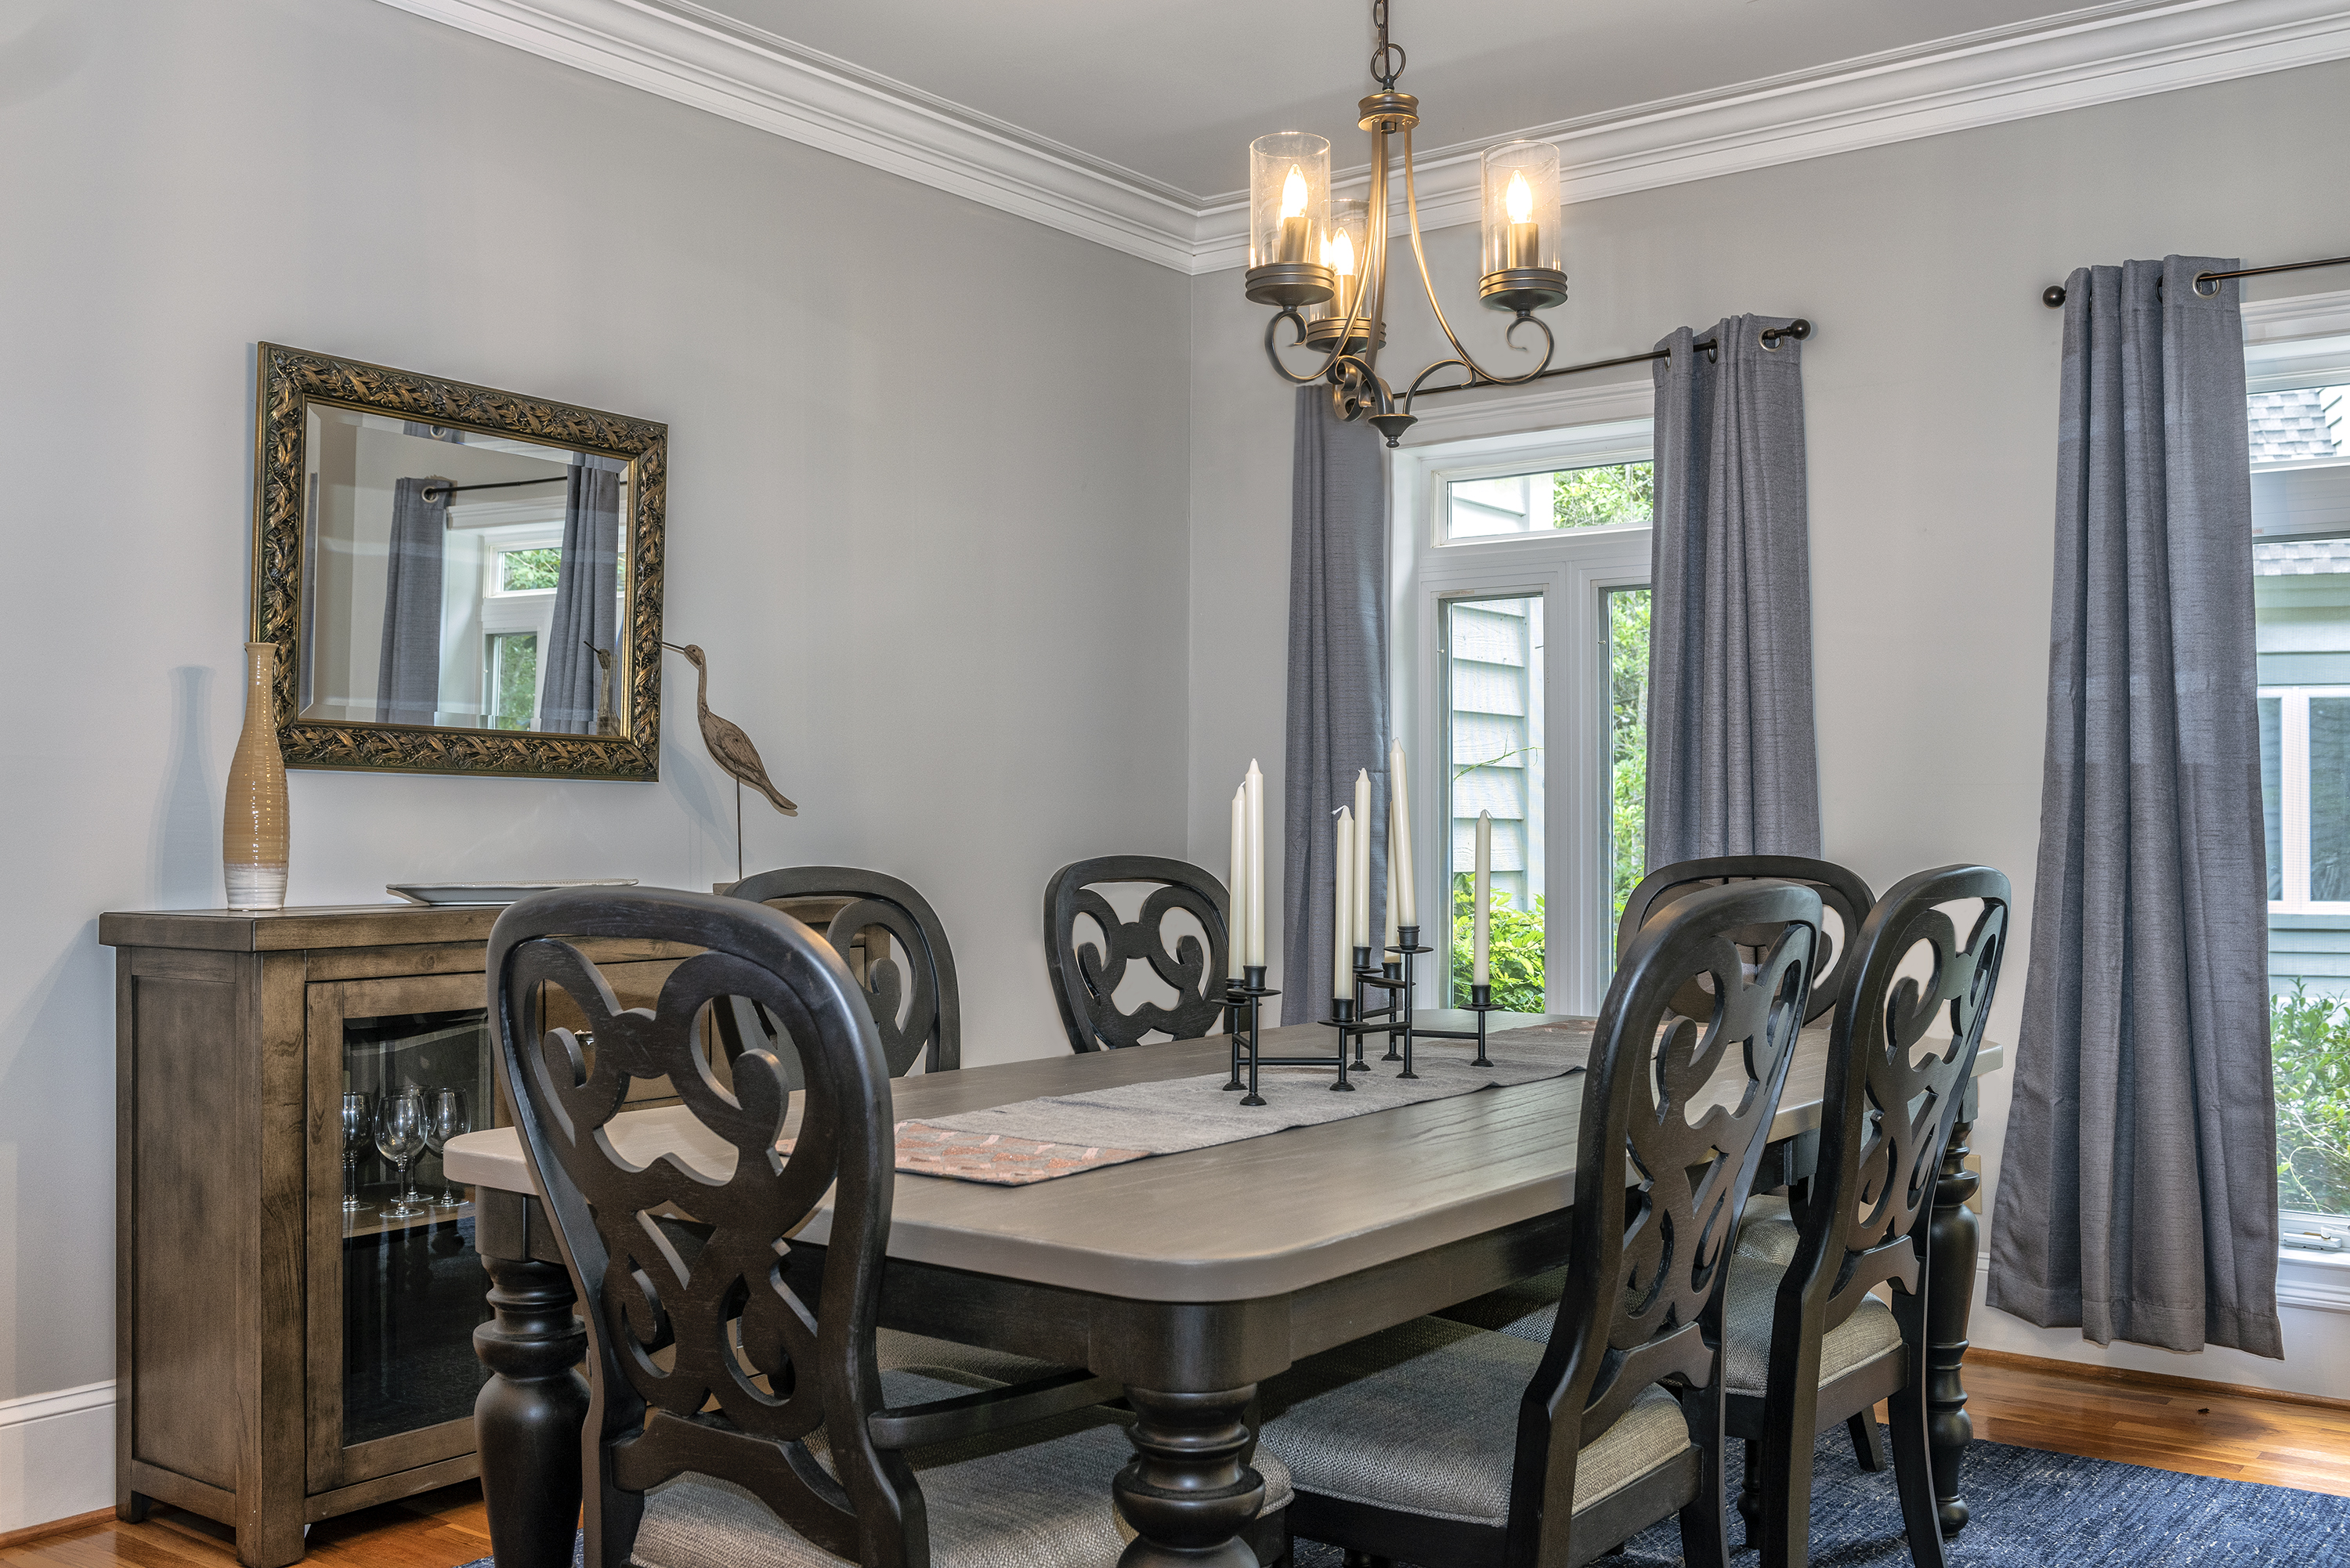 The dining table is a great spot for a wonderful dinner or Sunday breakfast.